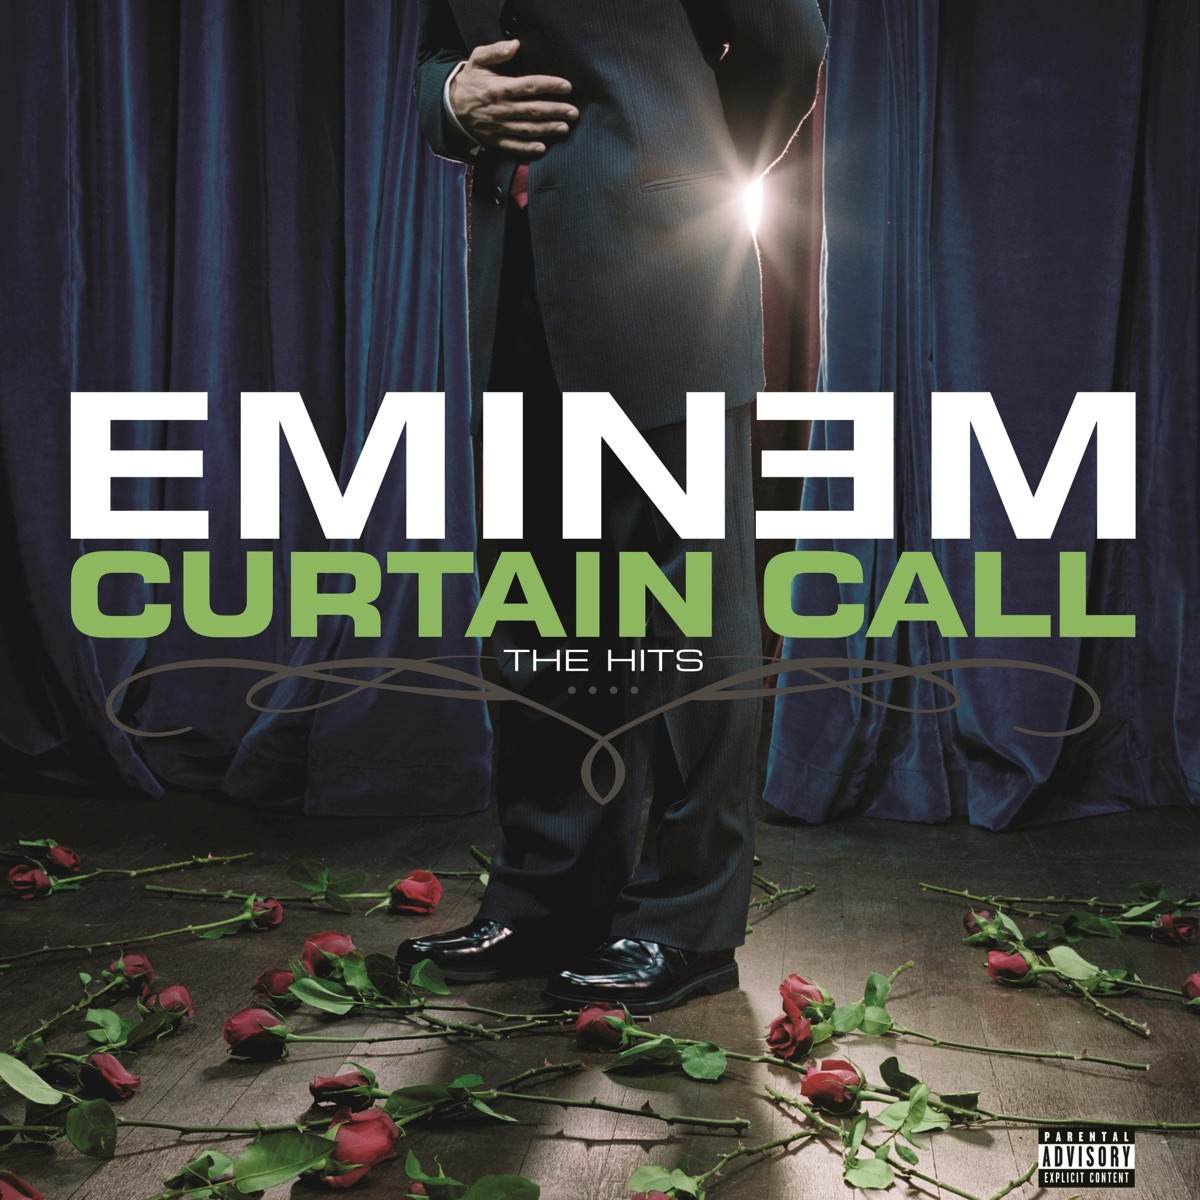 Eminem curtain call the hits deluxe version 2005 itunes plus aac m4a album